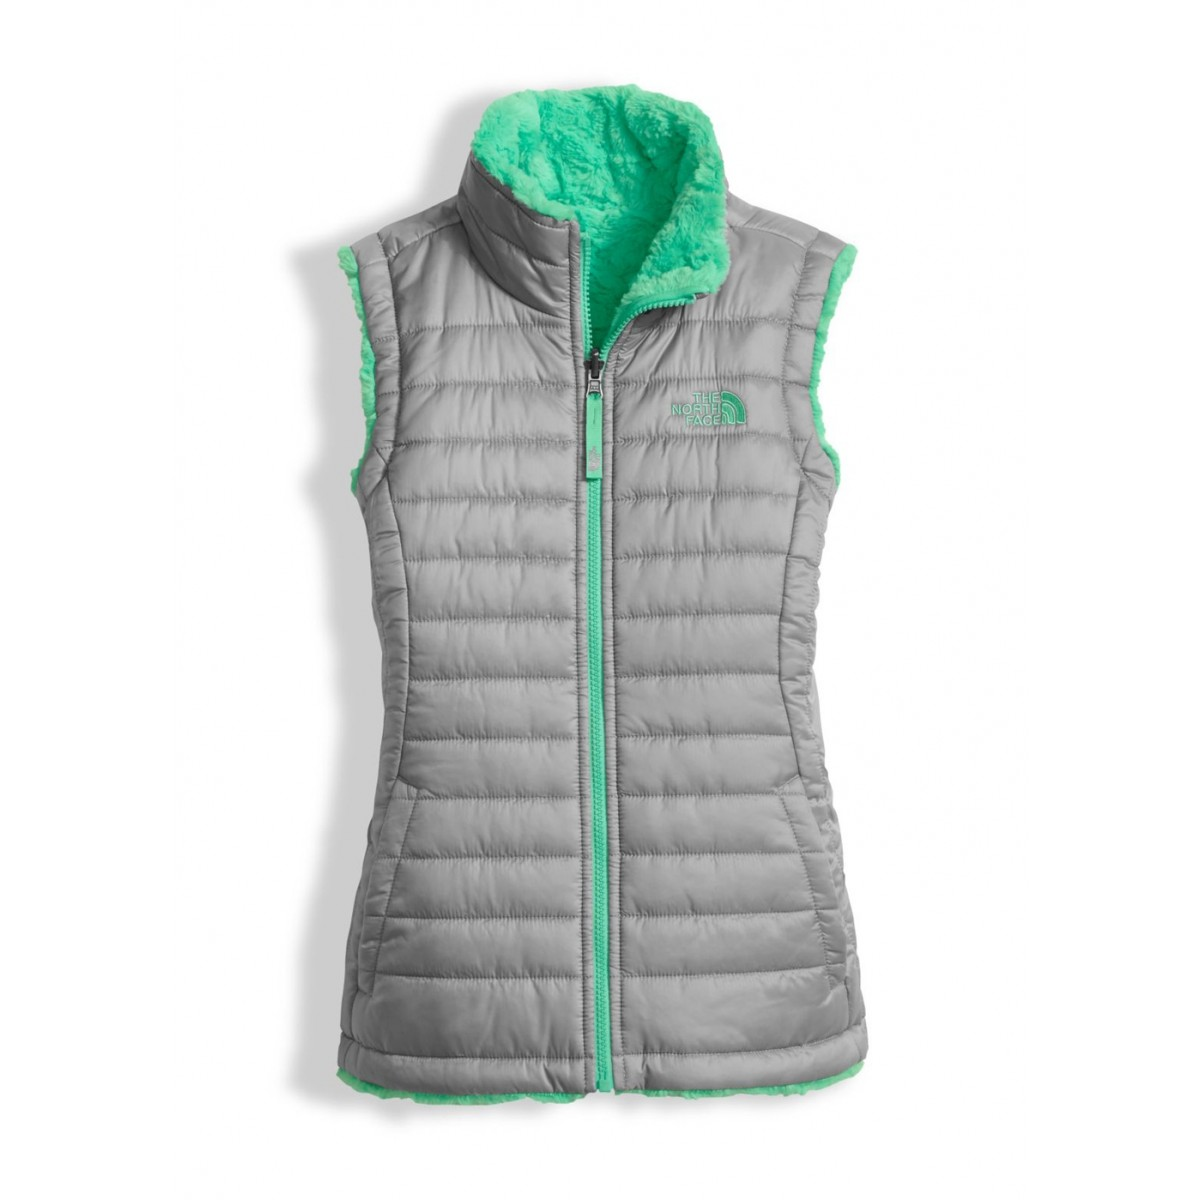 89c7ec5f3bf5 The North Face Girls Reversible Mossbud Swirl Vest - WinterKids.com